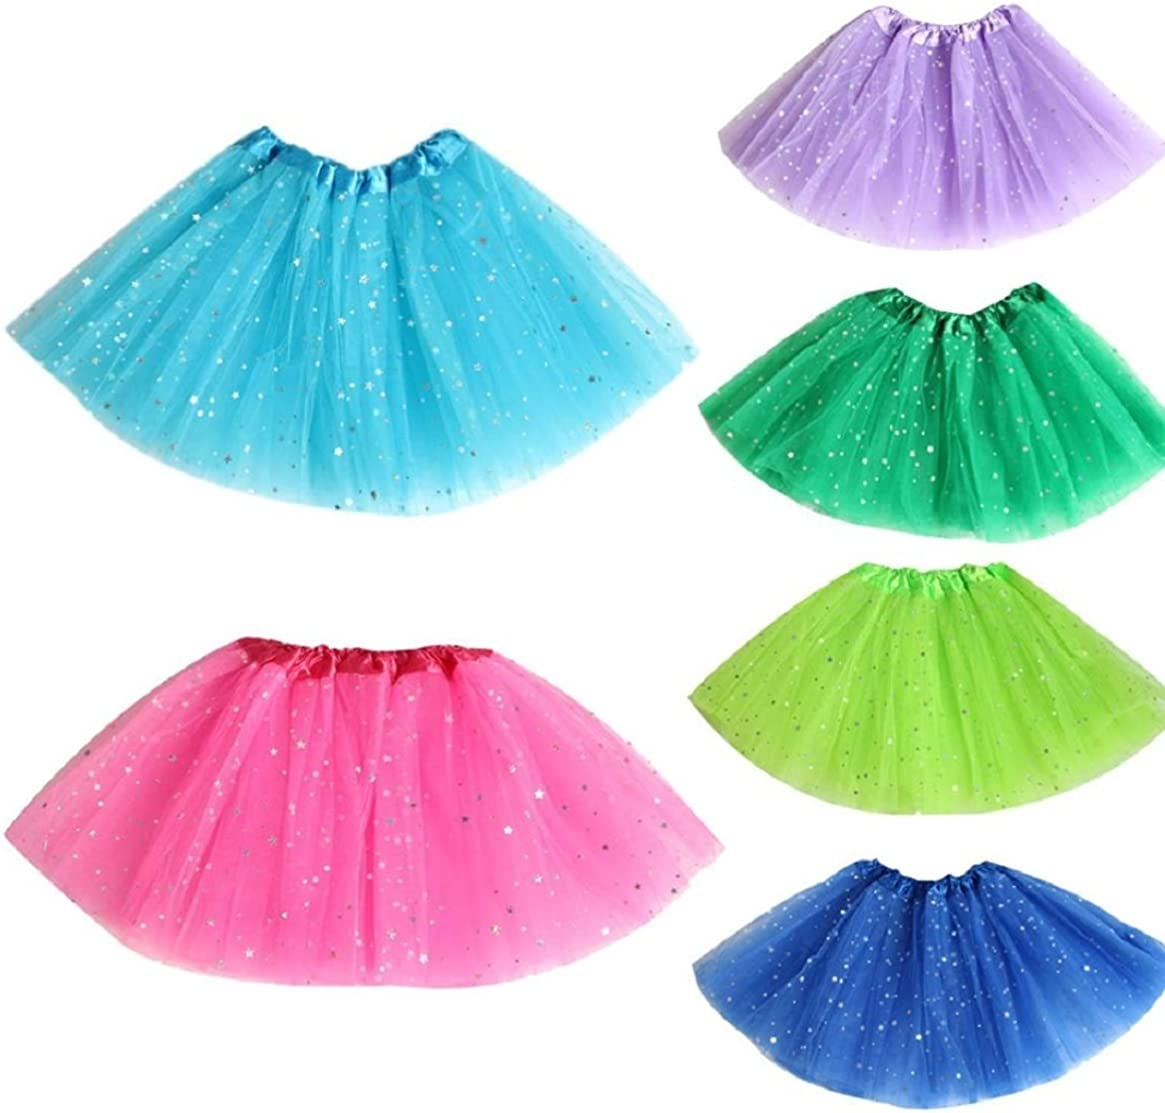 Coerni Premium Cotton Baby Girl Glitter Tutu Skirt